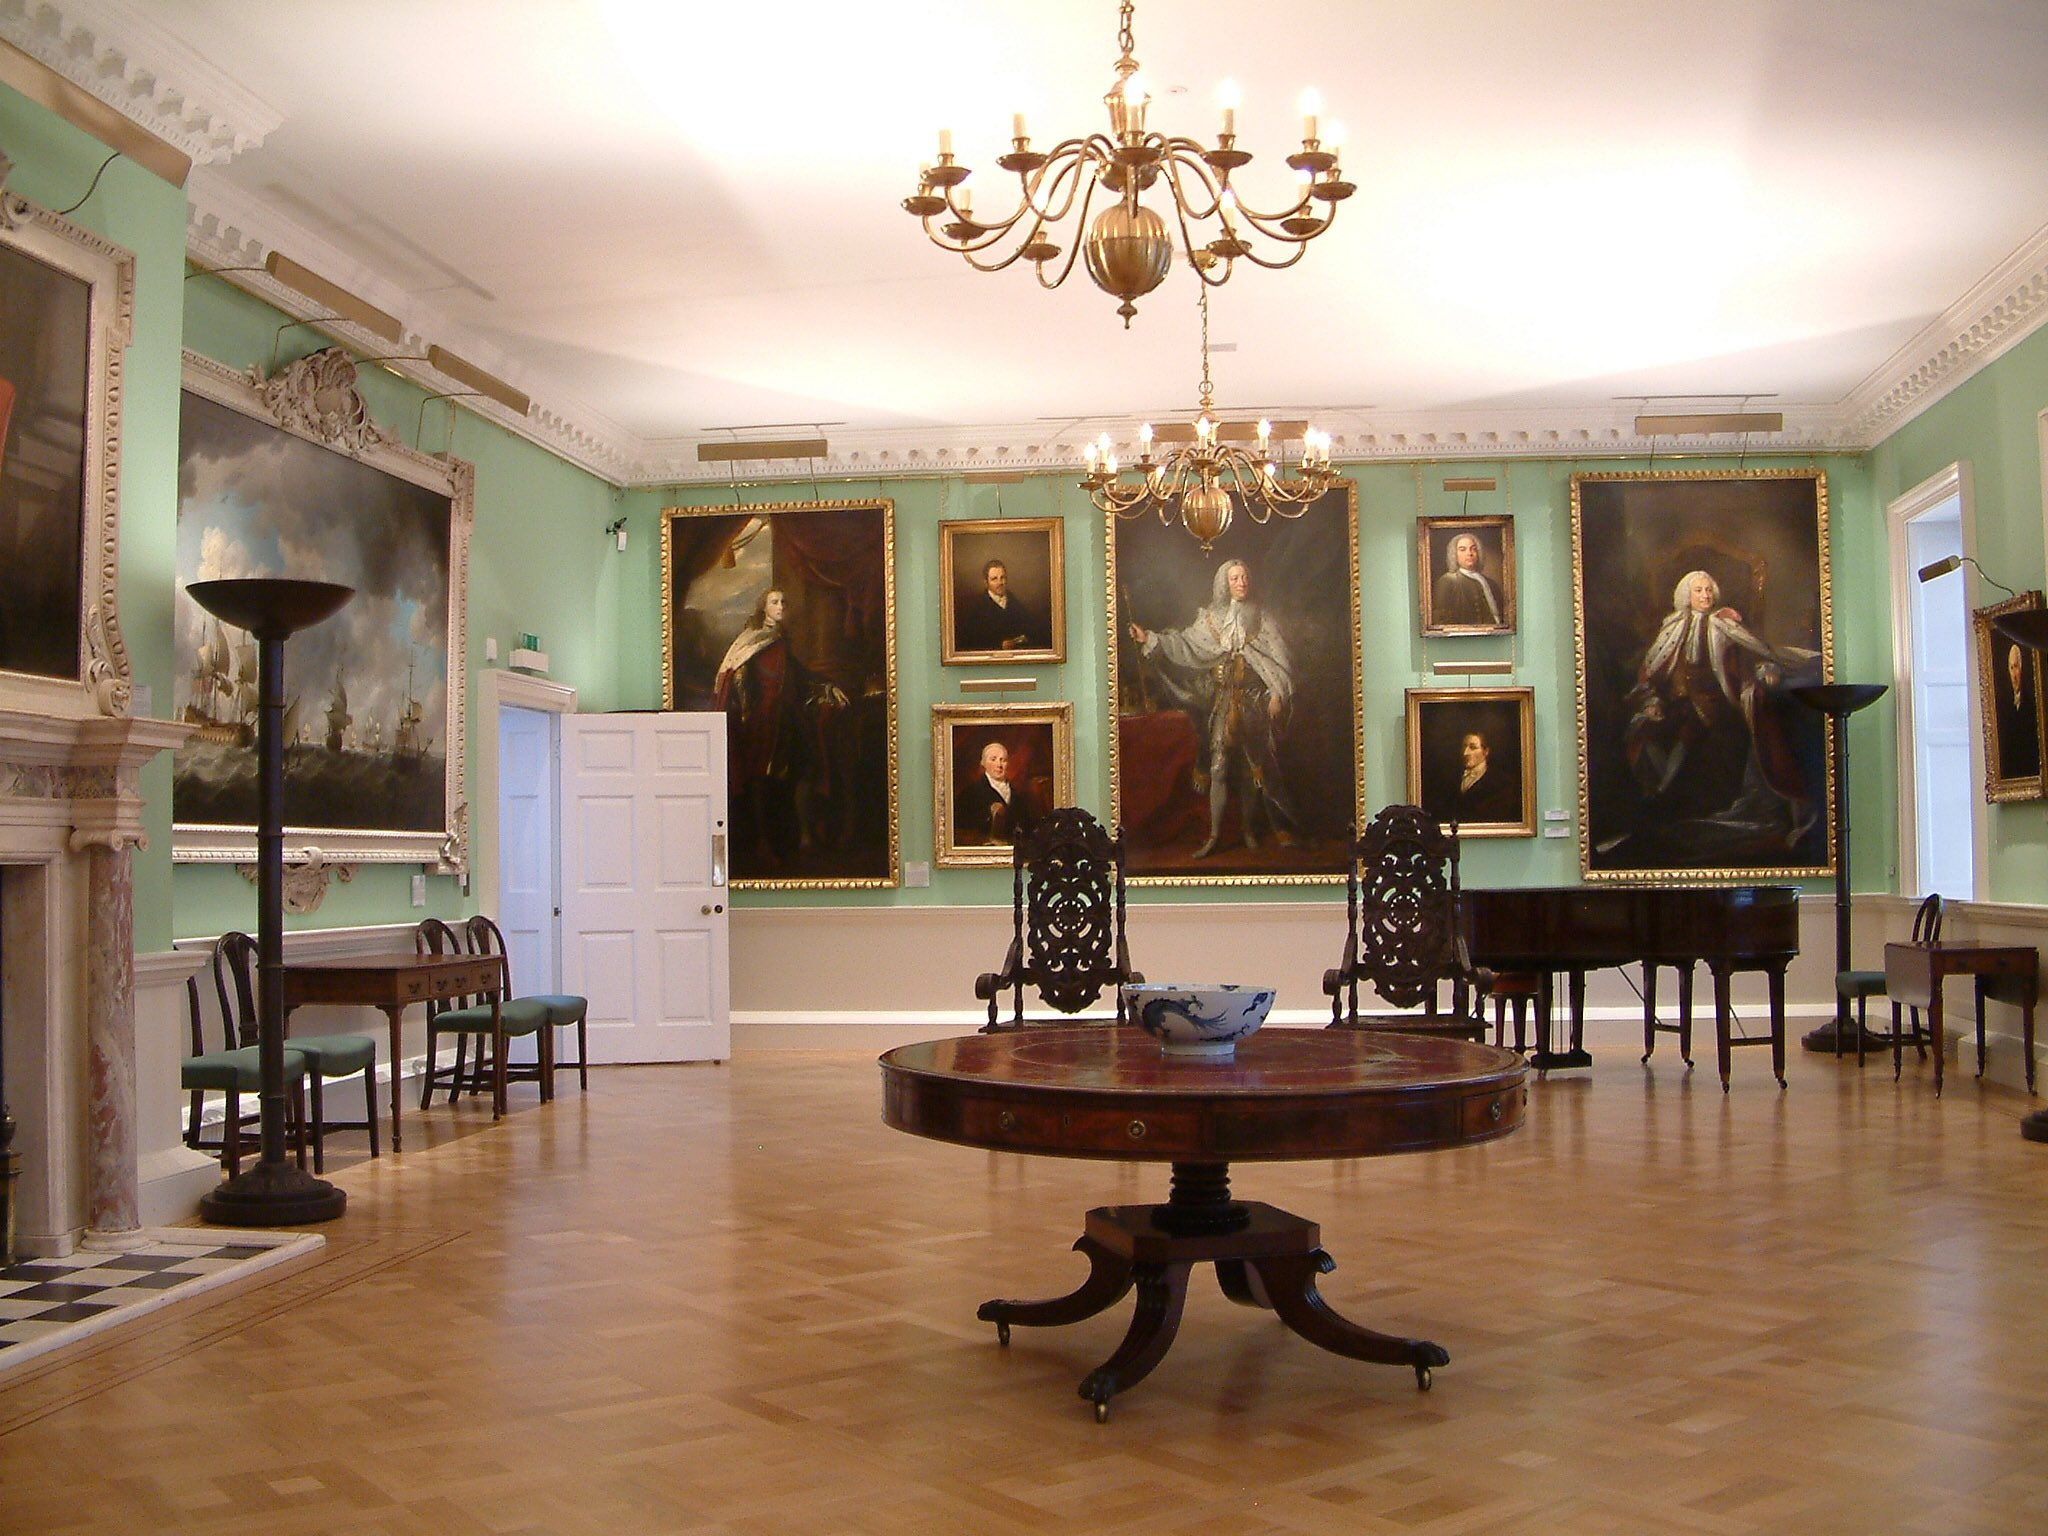 Excited about tonight's NAW awards ceremony at London's lovely @FoundlingMuseum See you there! #SupportAdoption https://t.co/QShBE6y3zJ